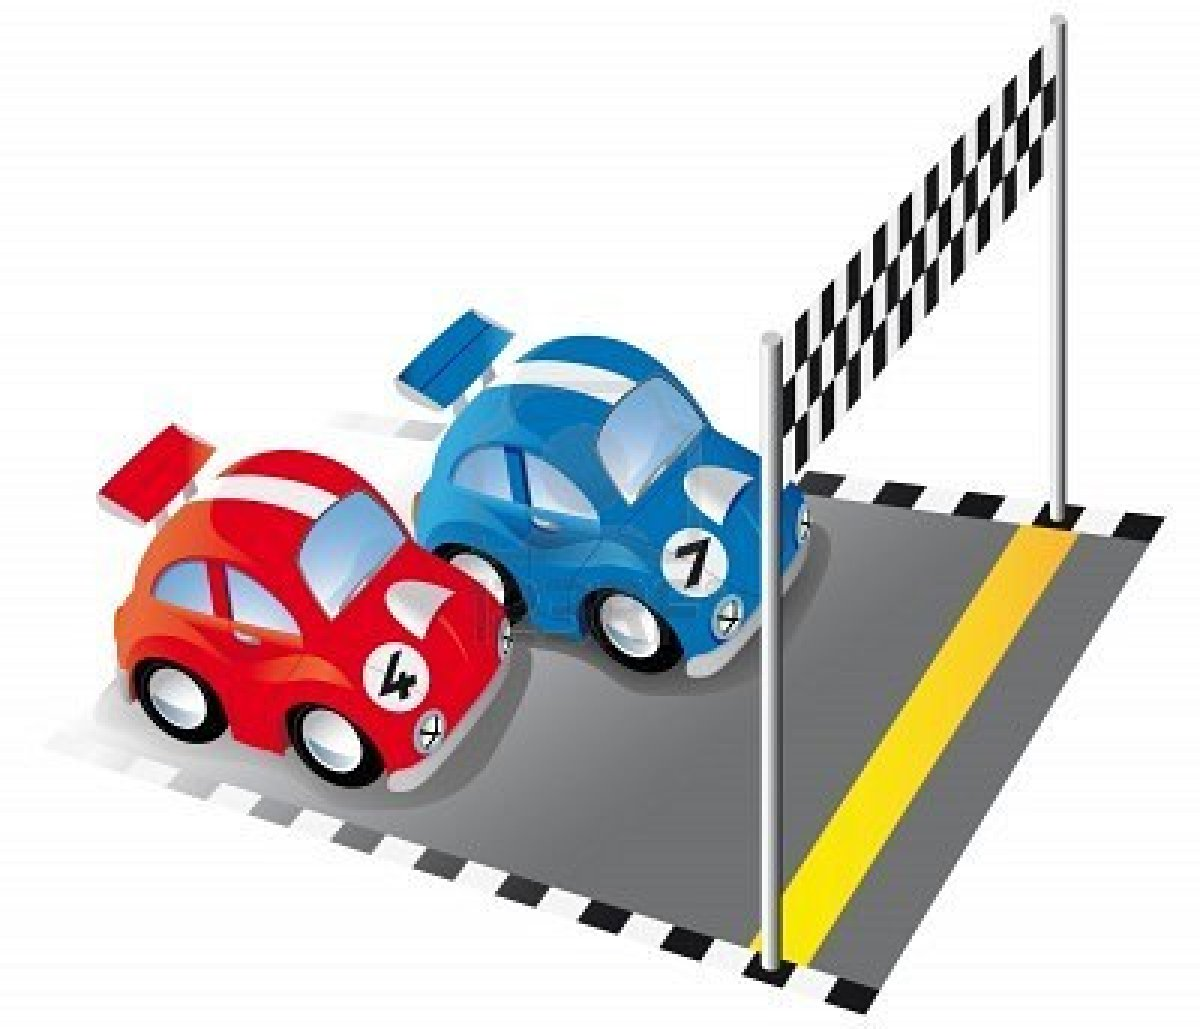 7166387 Two Funny Race Cars On Race Track With Finish Line And